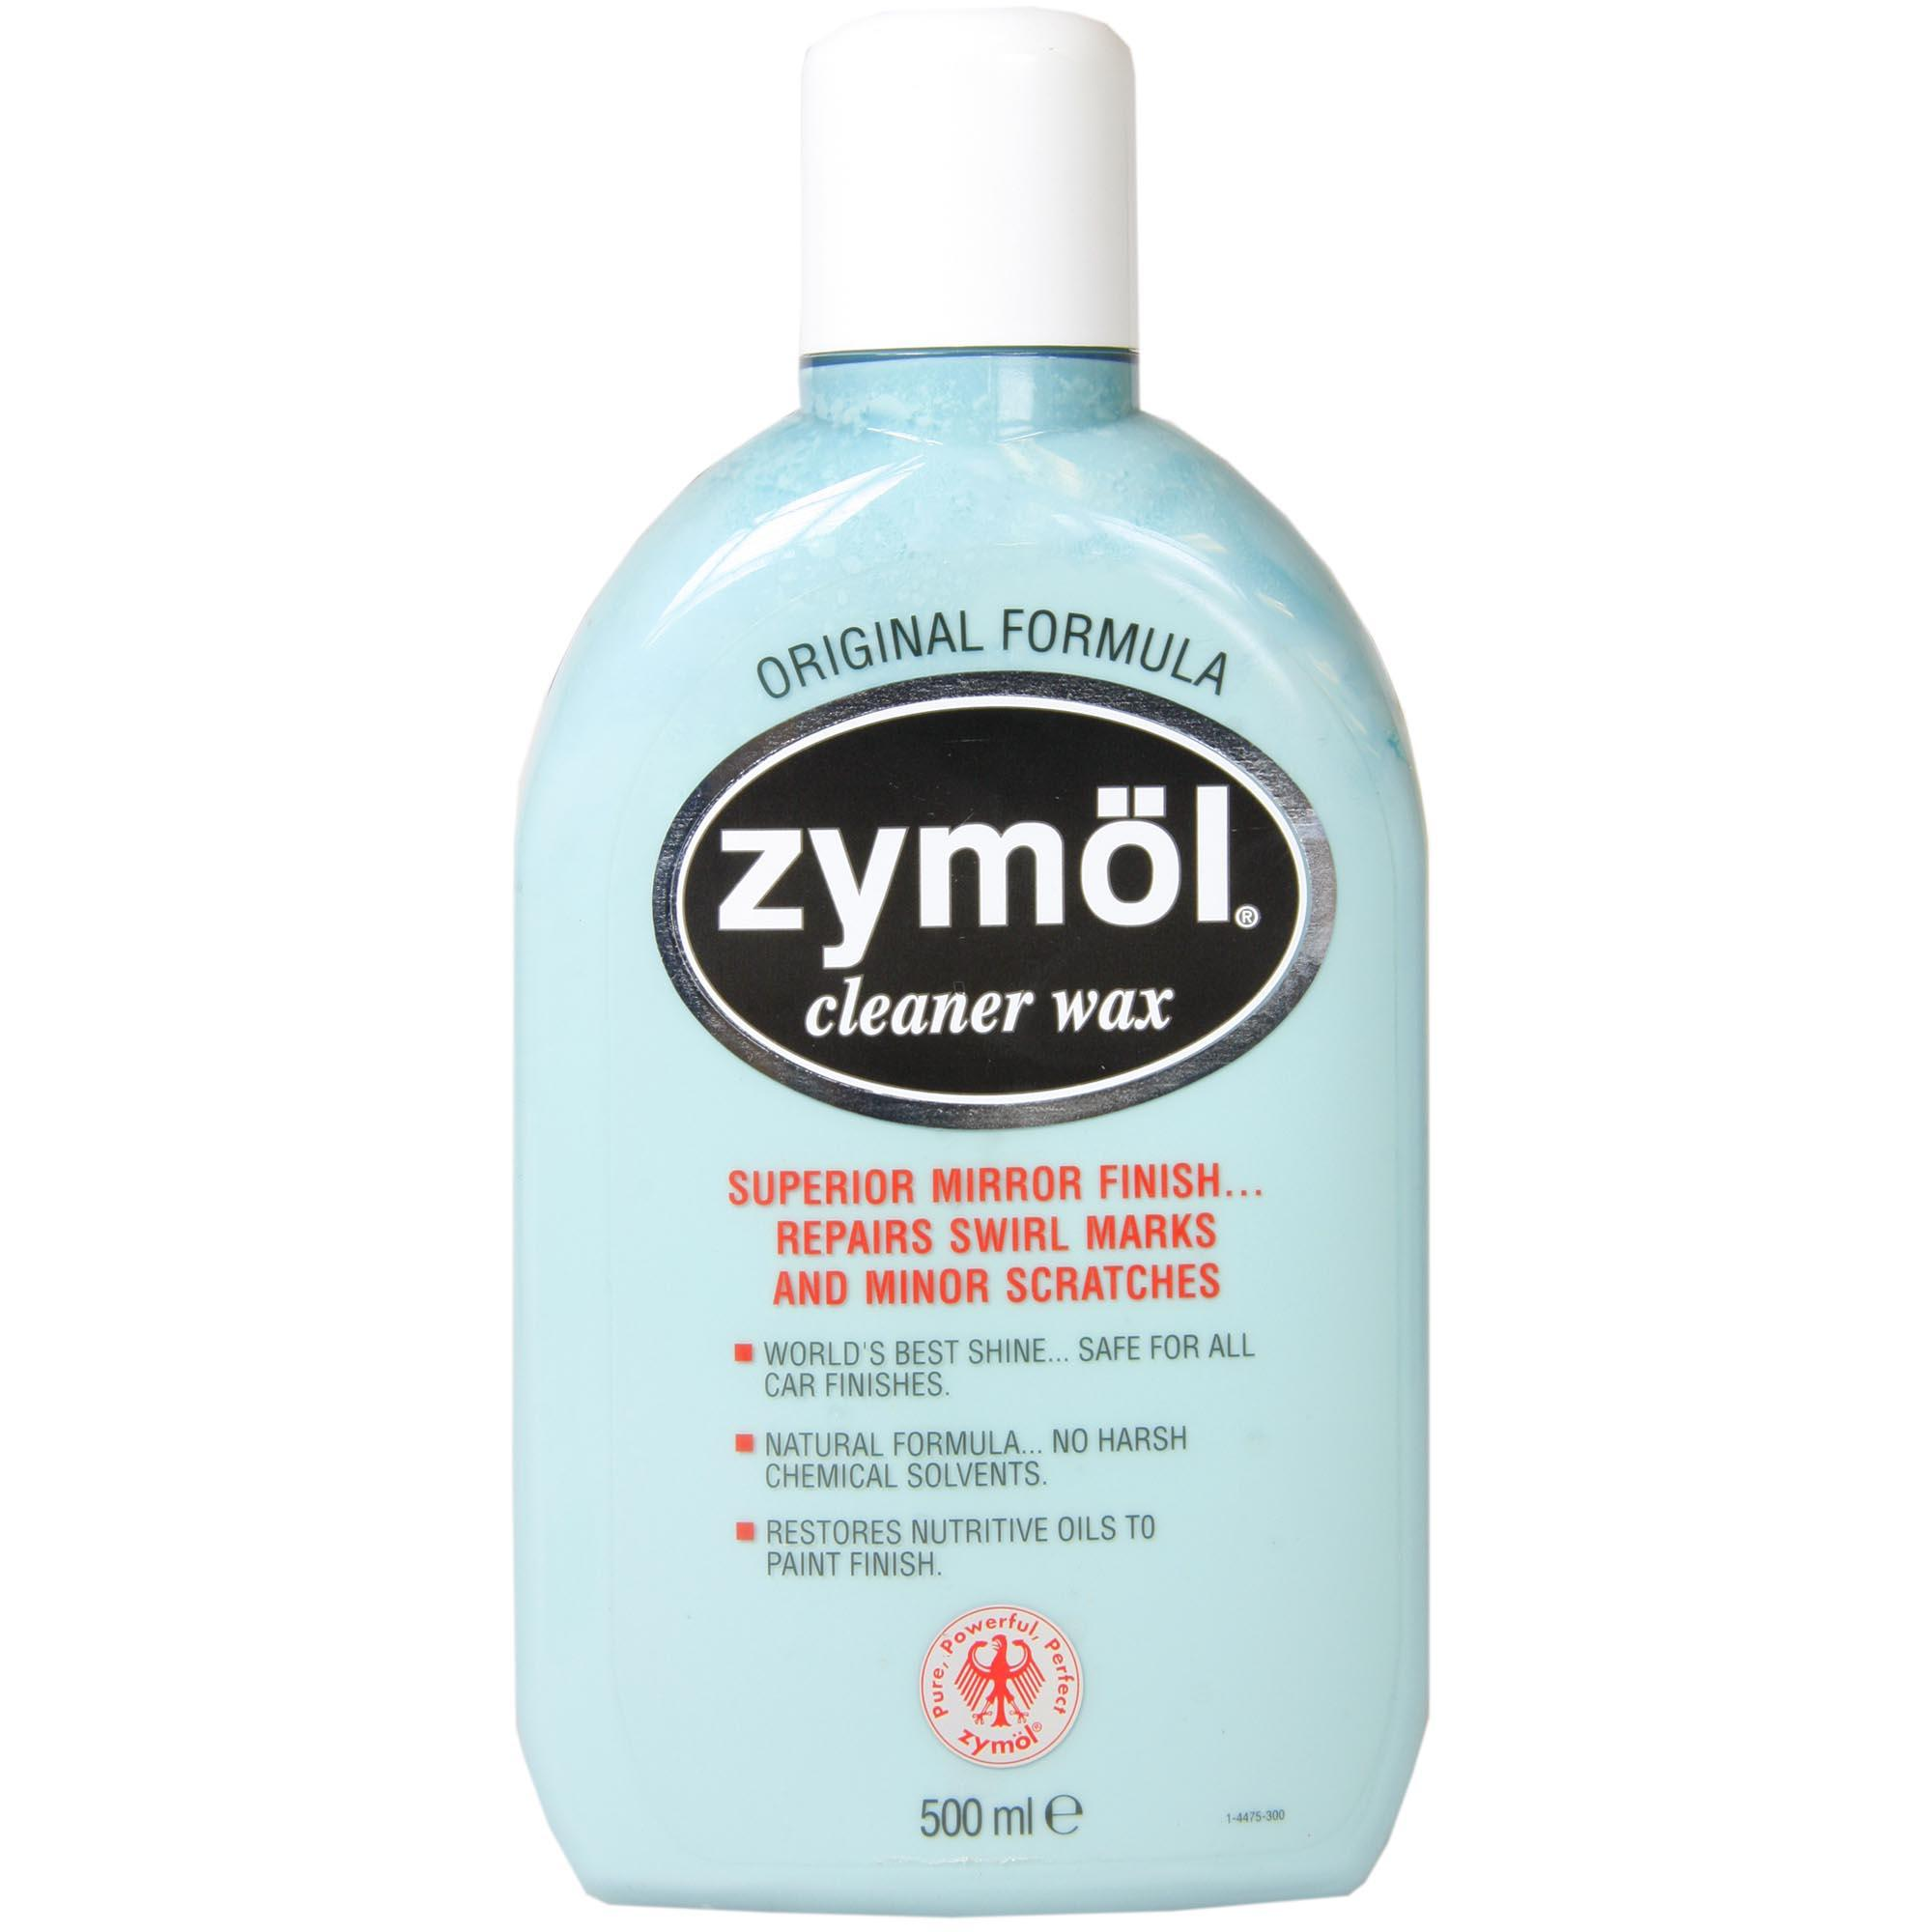 Zymol Cleaner Wax Ebay 7531666 Waxes Rouge 8 Oz